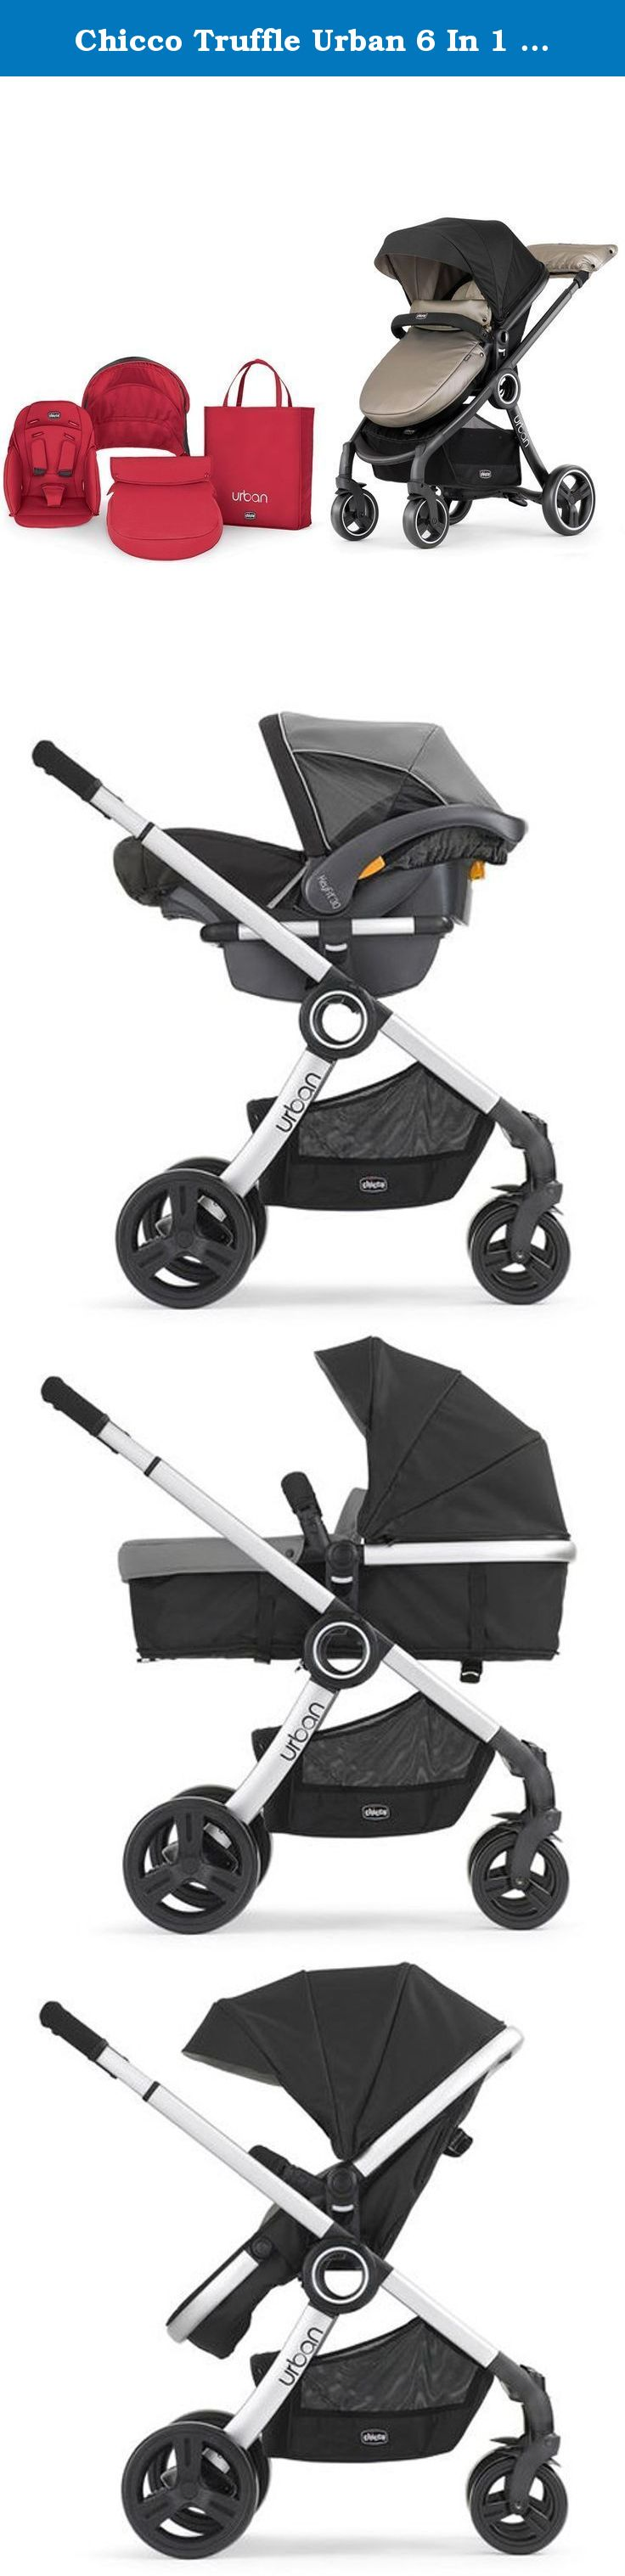 Chicco Truffle Urban 6 In 1 Modular Stroller with Red